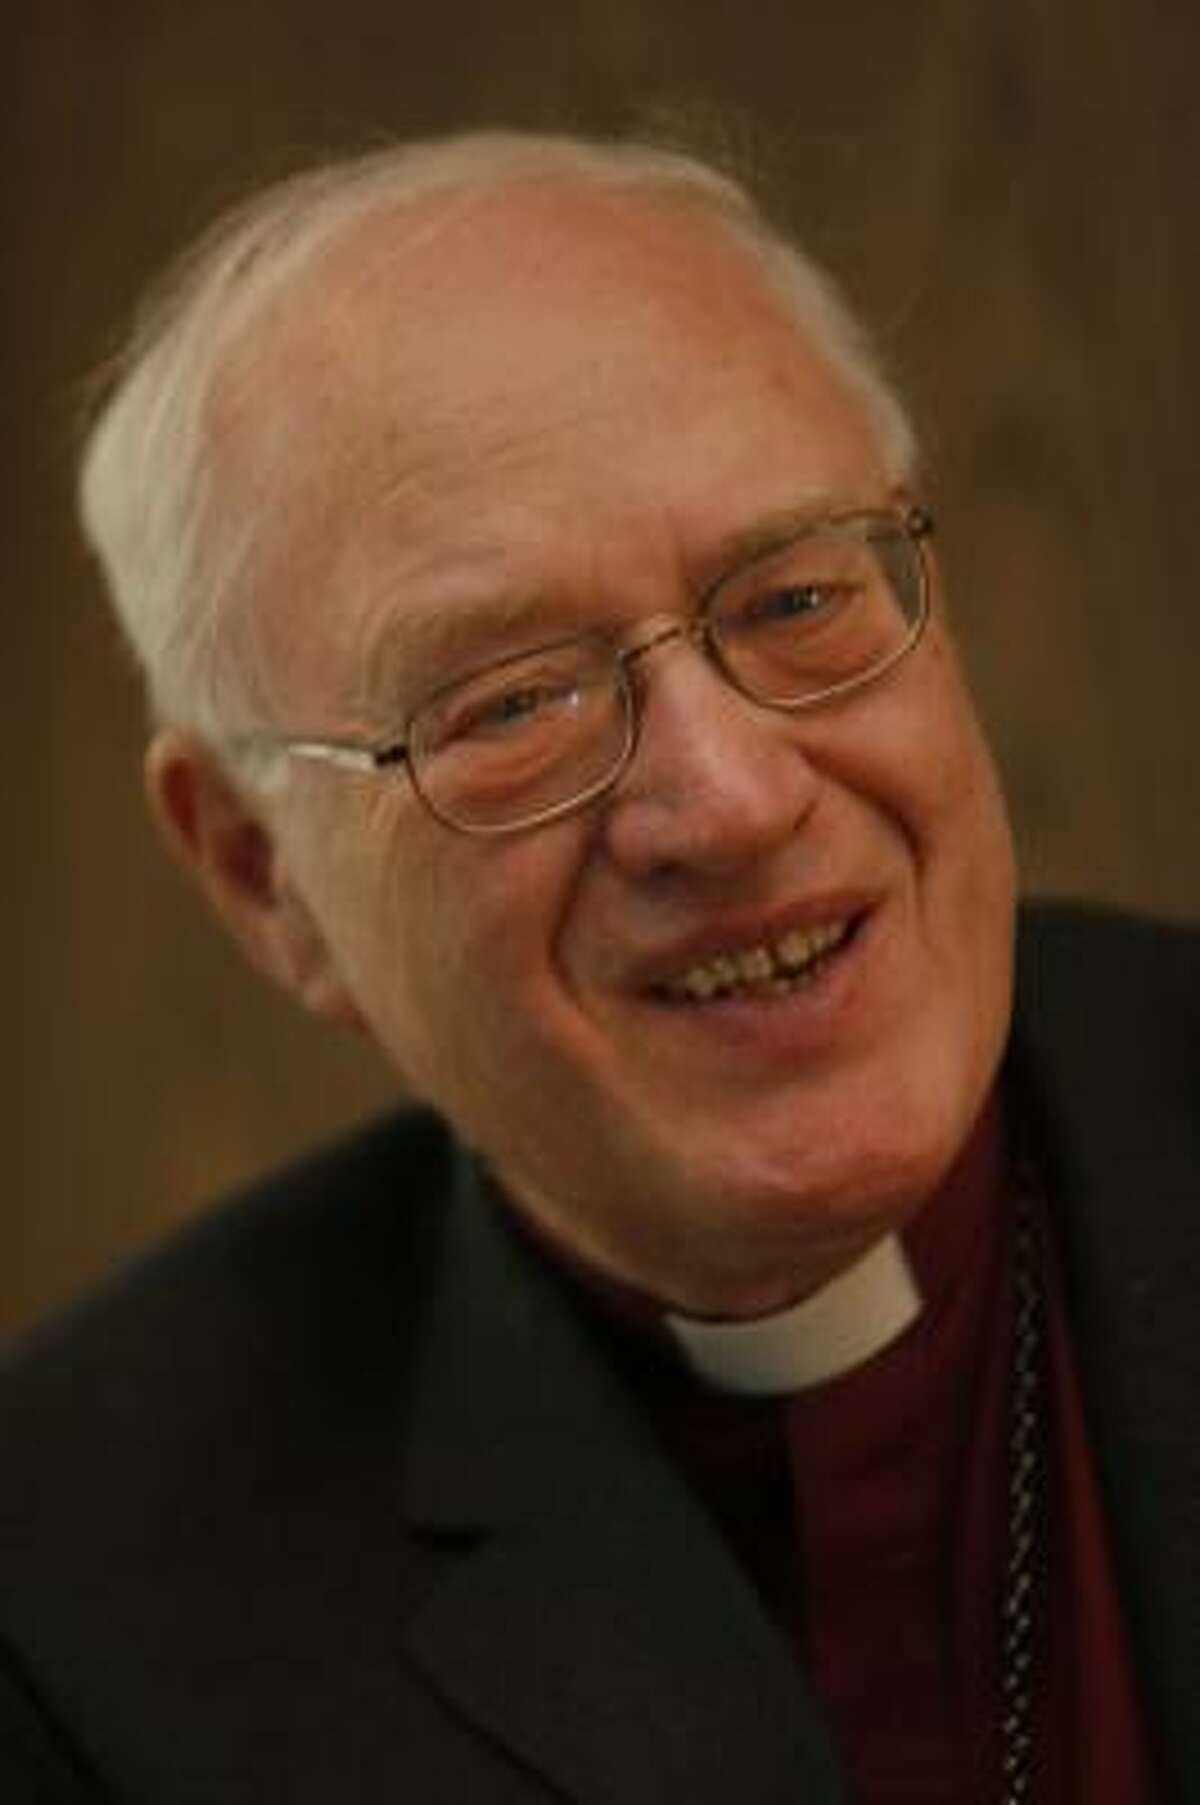 The Most Rev. George Carey says the American church has turned its back on the voice of the Lambeth Conference.